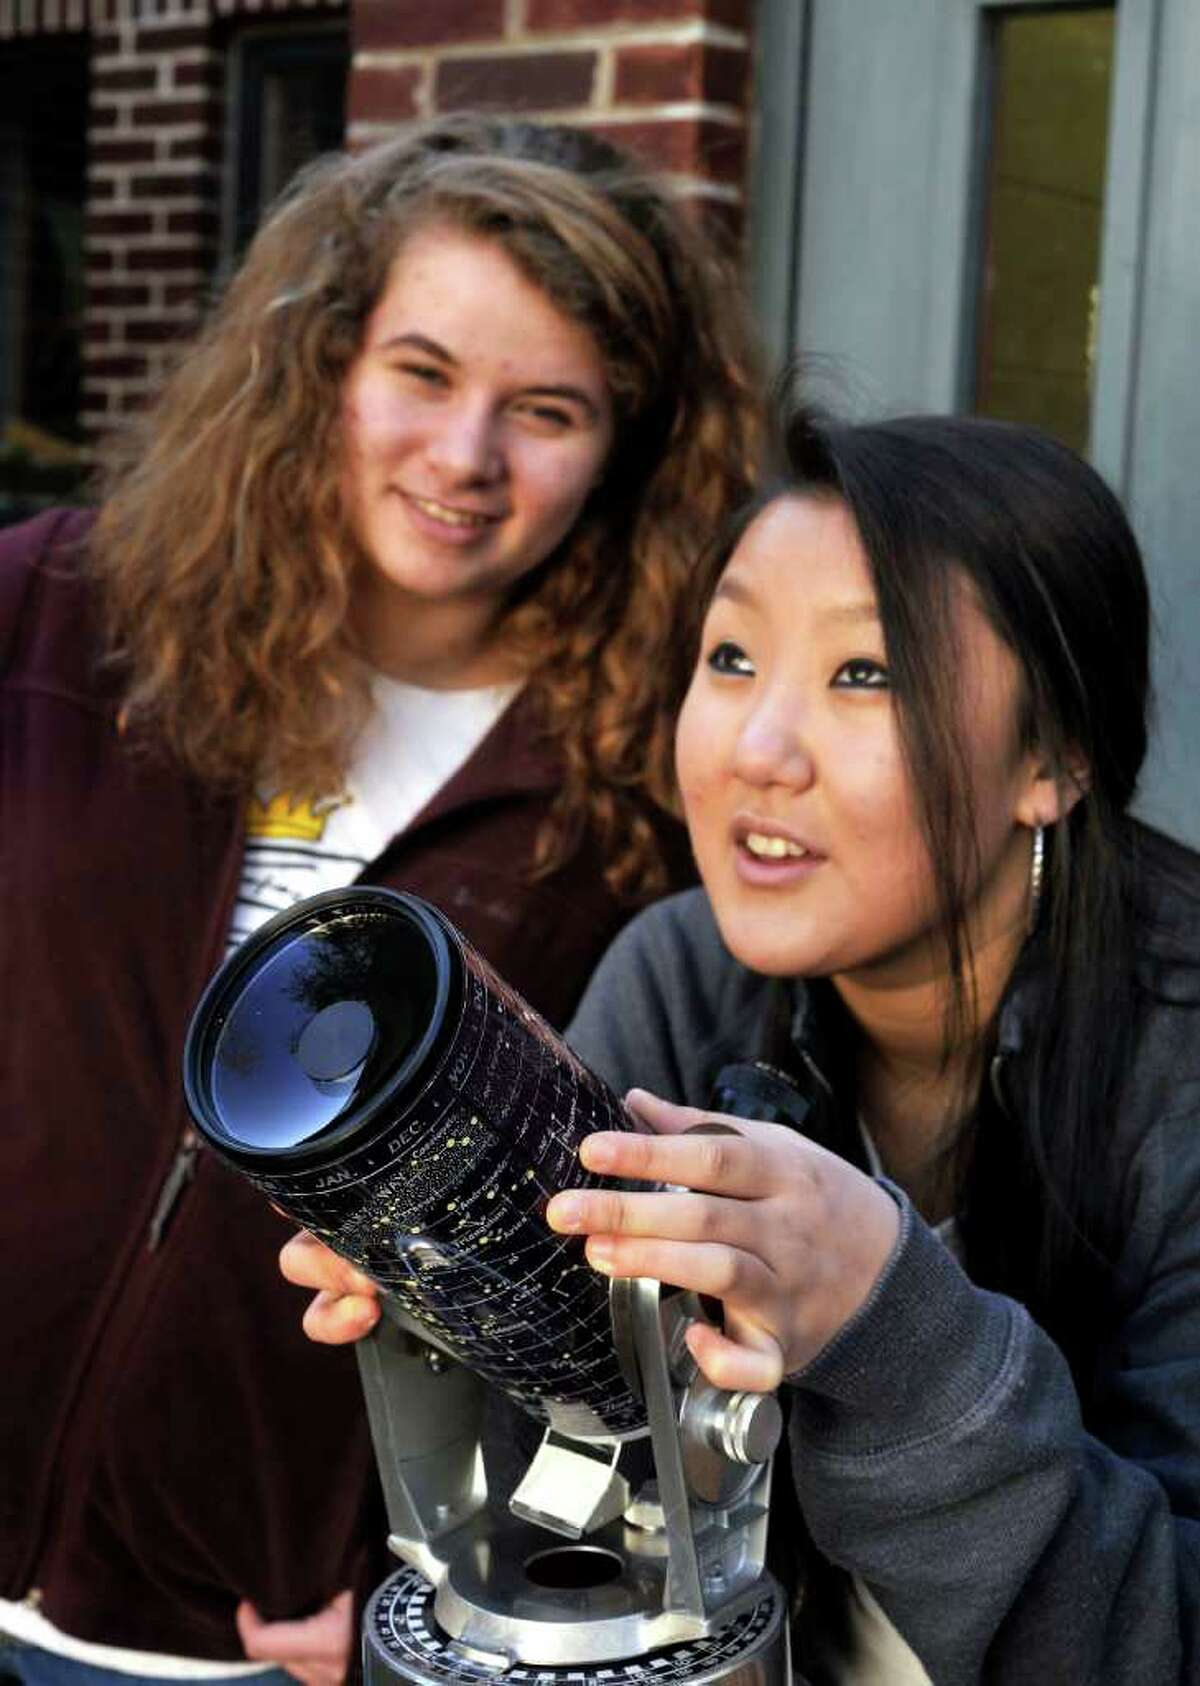 Sierra Schafer, left, and Esther Kim, both 15, look for the moon outside the Ridgefield Library during Planatary astronomer Heidi Hammel's talk about telescopes Saturday, March 3, 2012.